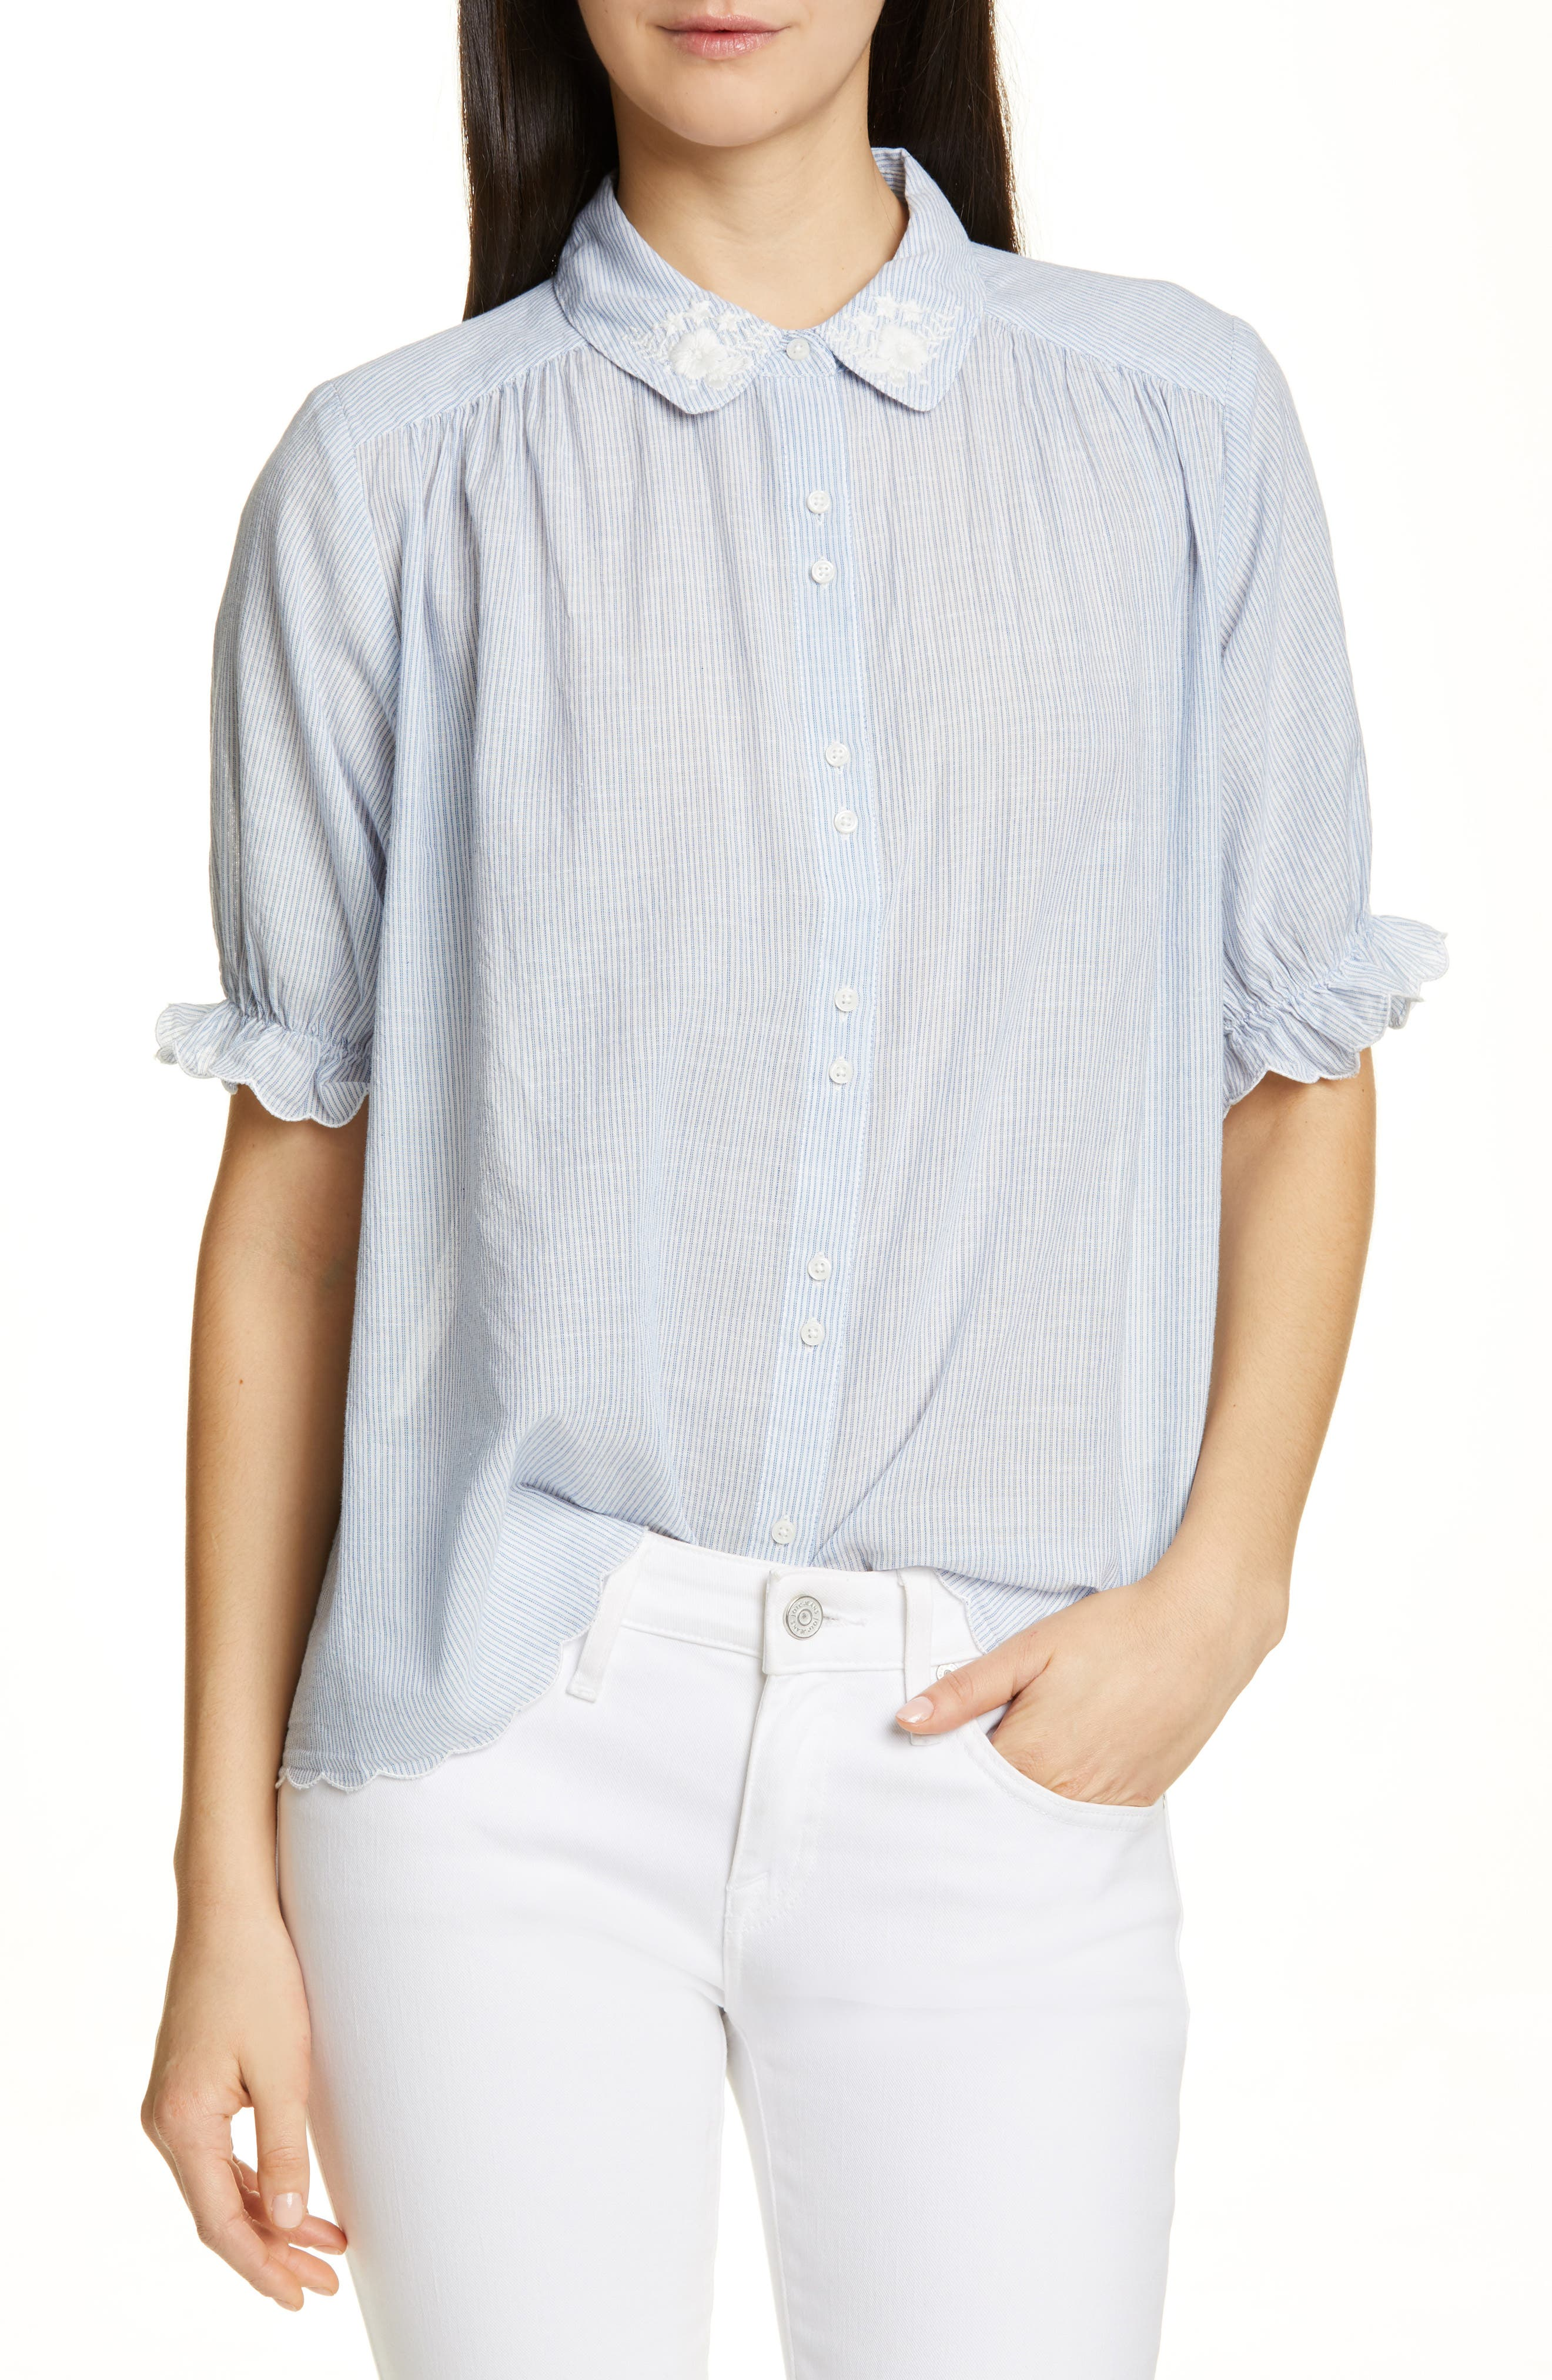 THE GREAT., The Kerchief Embroidered Cotton Top, Main thumbnail 1, color, CAROLINA STRIPE